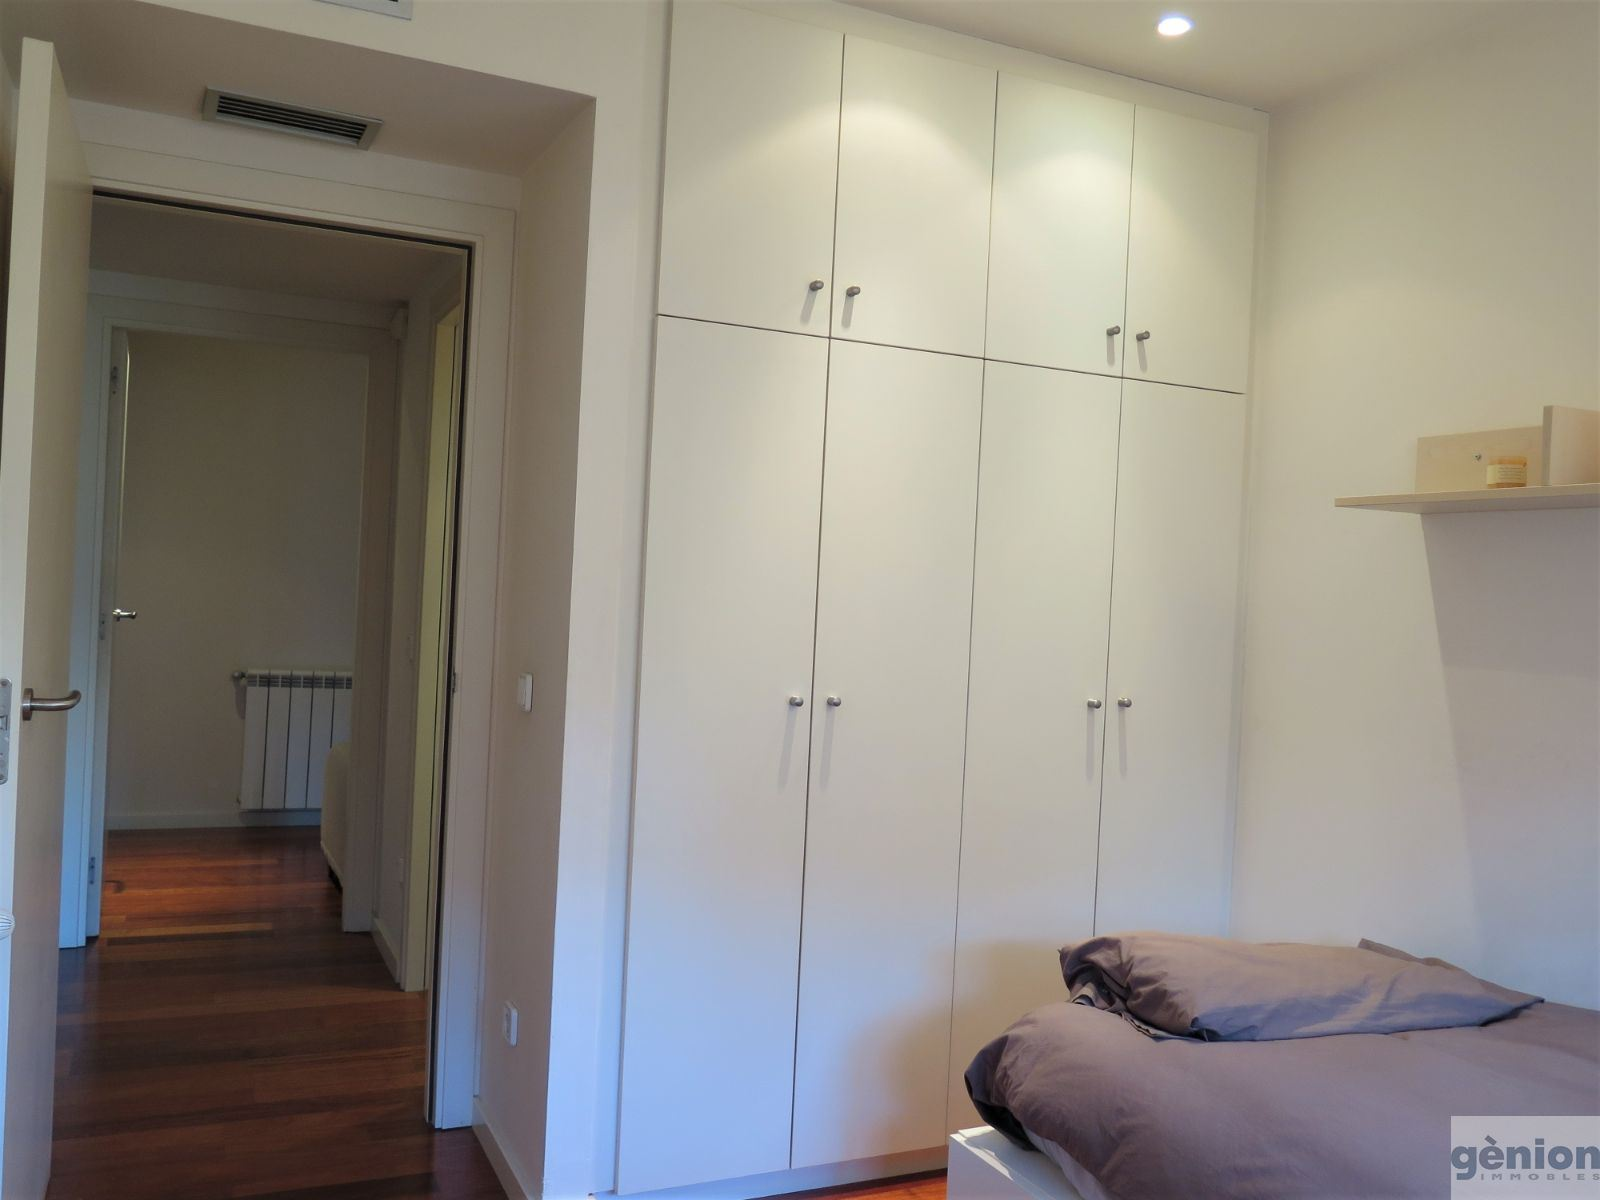 EXCLUSIVE 4-BEDROOM APARTMENT IN GIRONA'S MONTILIVI DISTRICT. OPTIONAL GARAGE